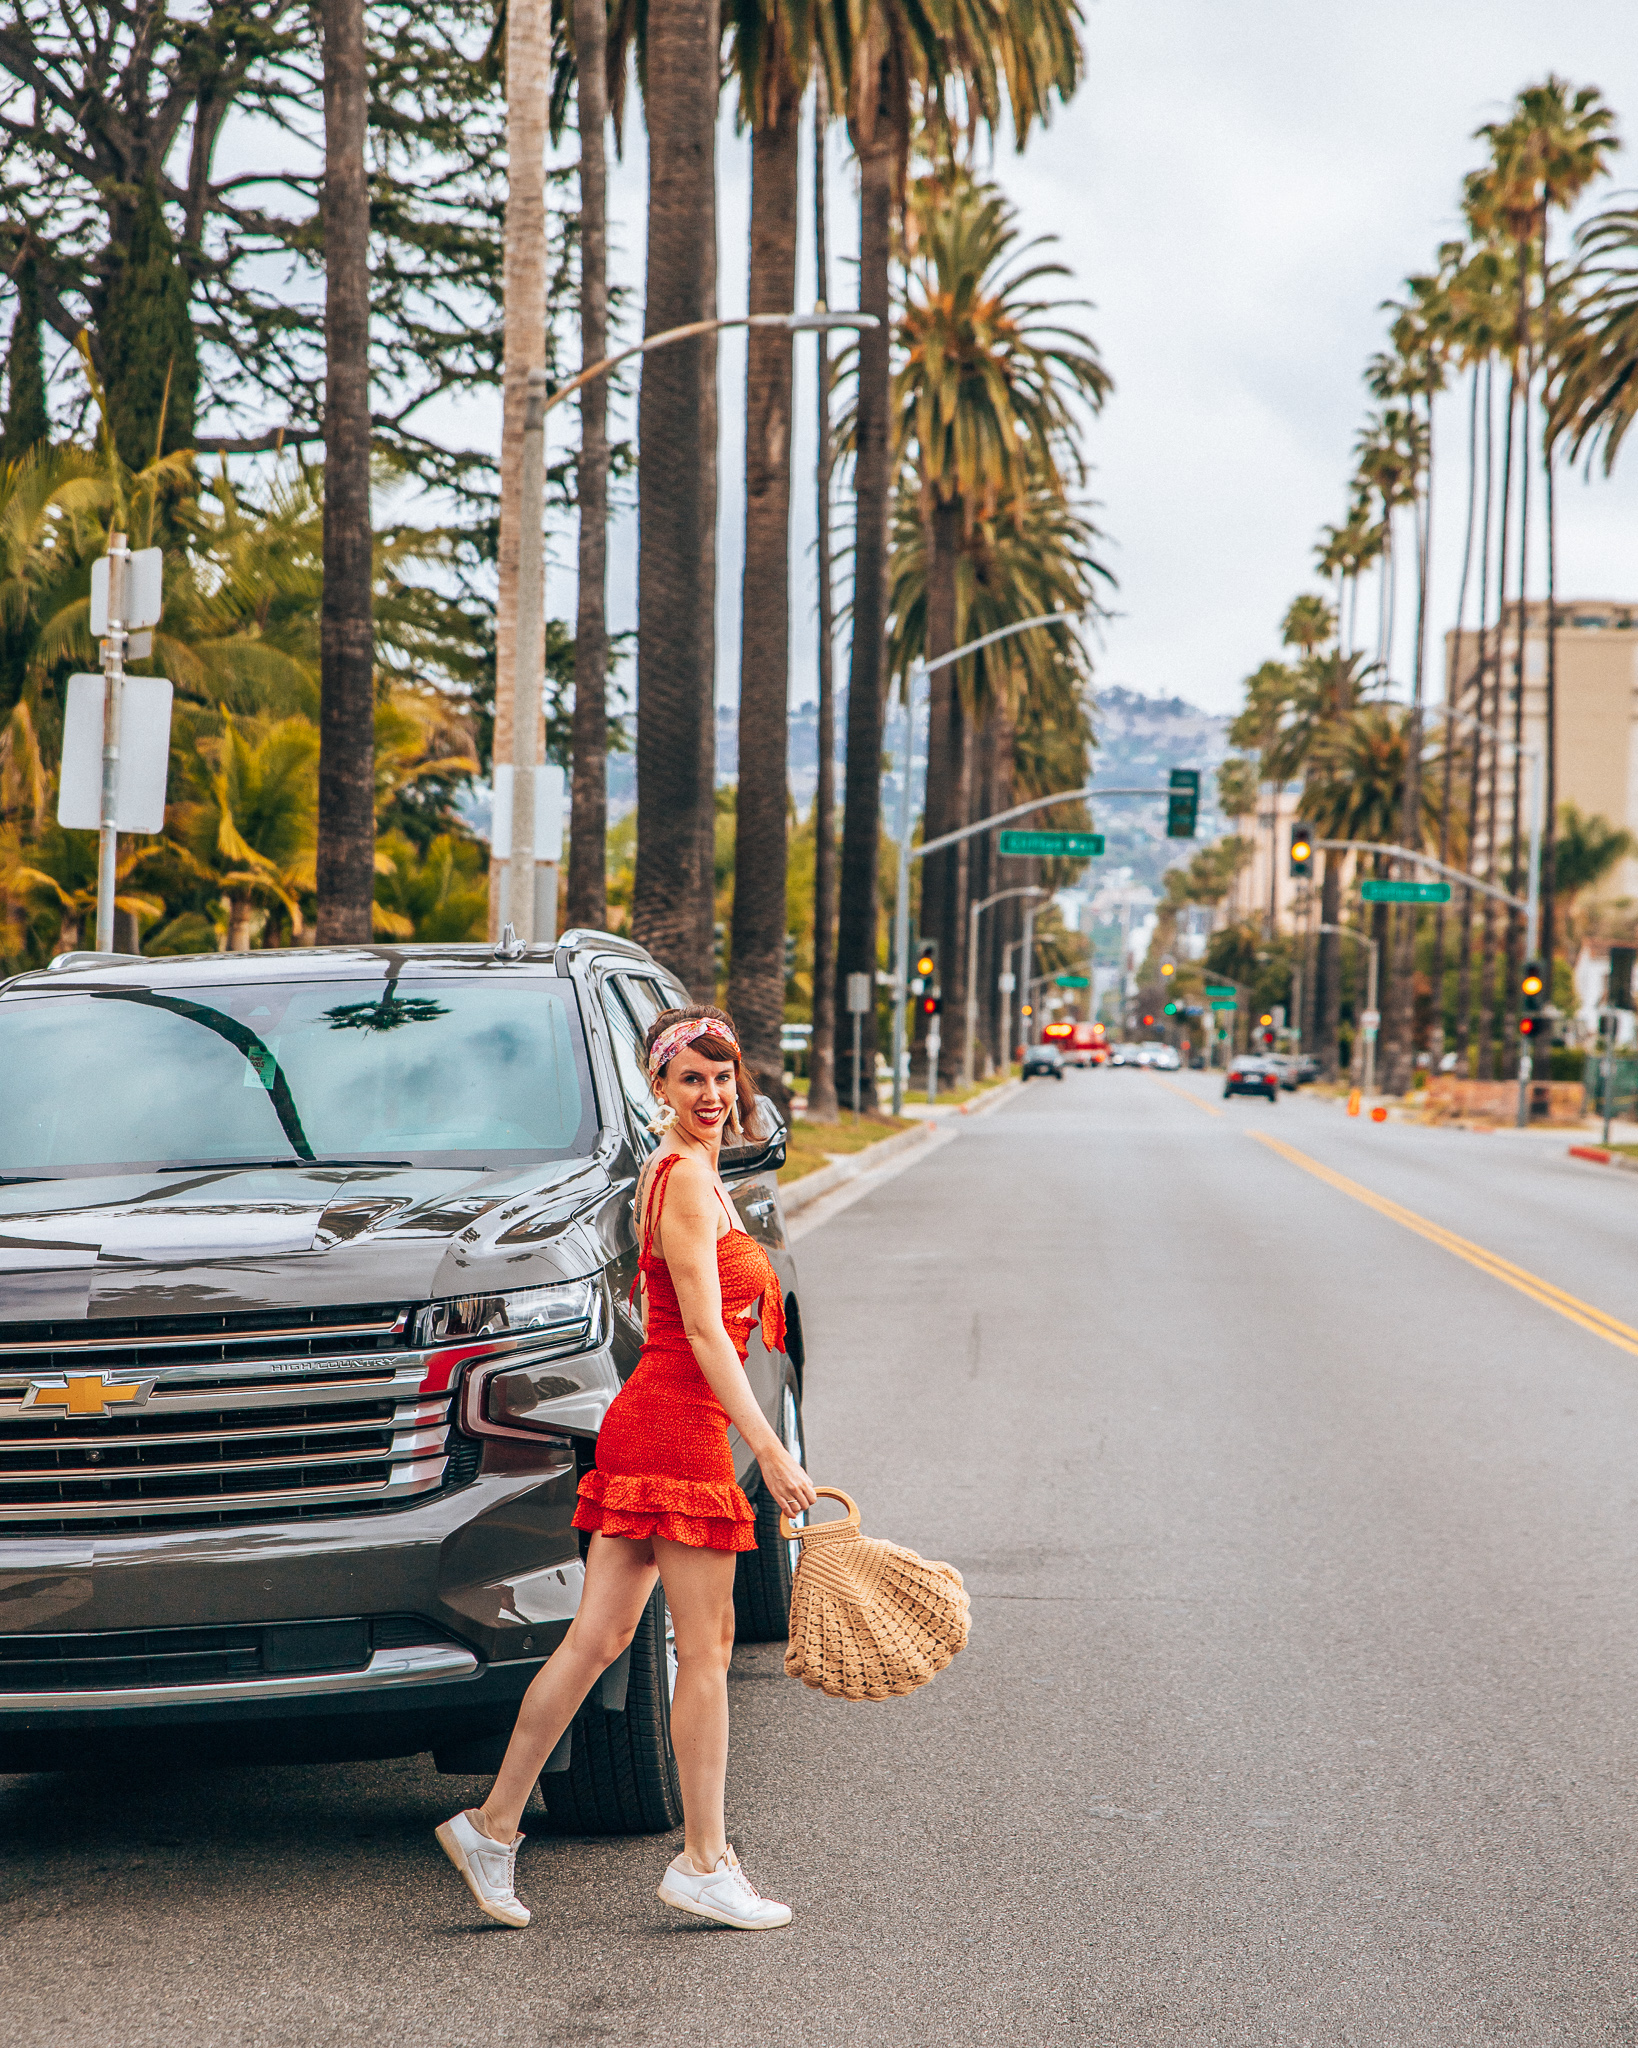 Girl in red mini dress with a purse walking in front of a Chevrolet Tahoe